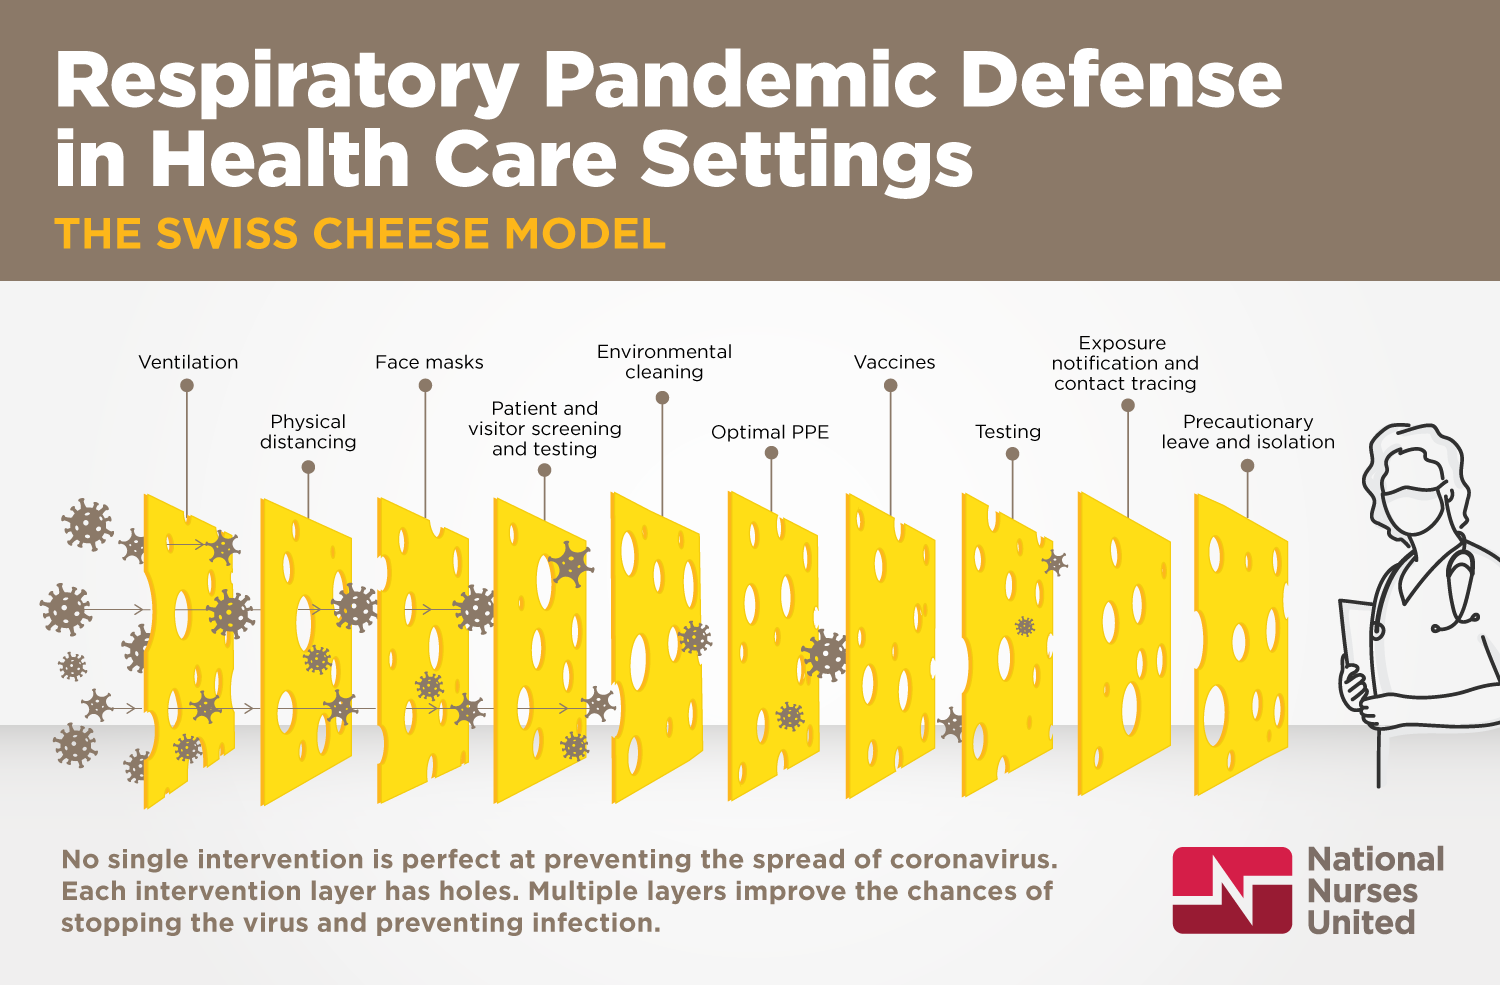 Respiratory Pandemic Defense in Health Care Settings: The Swiss Cheese Model